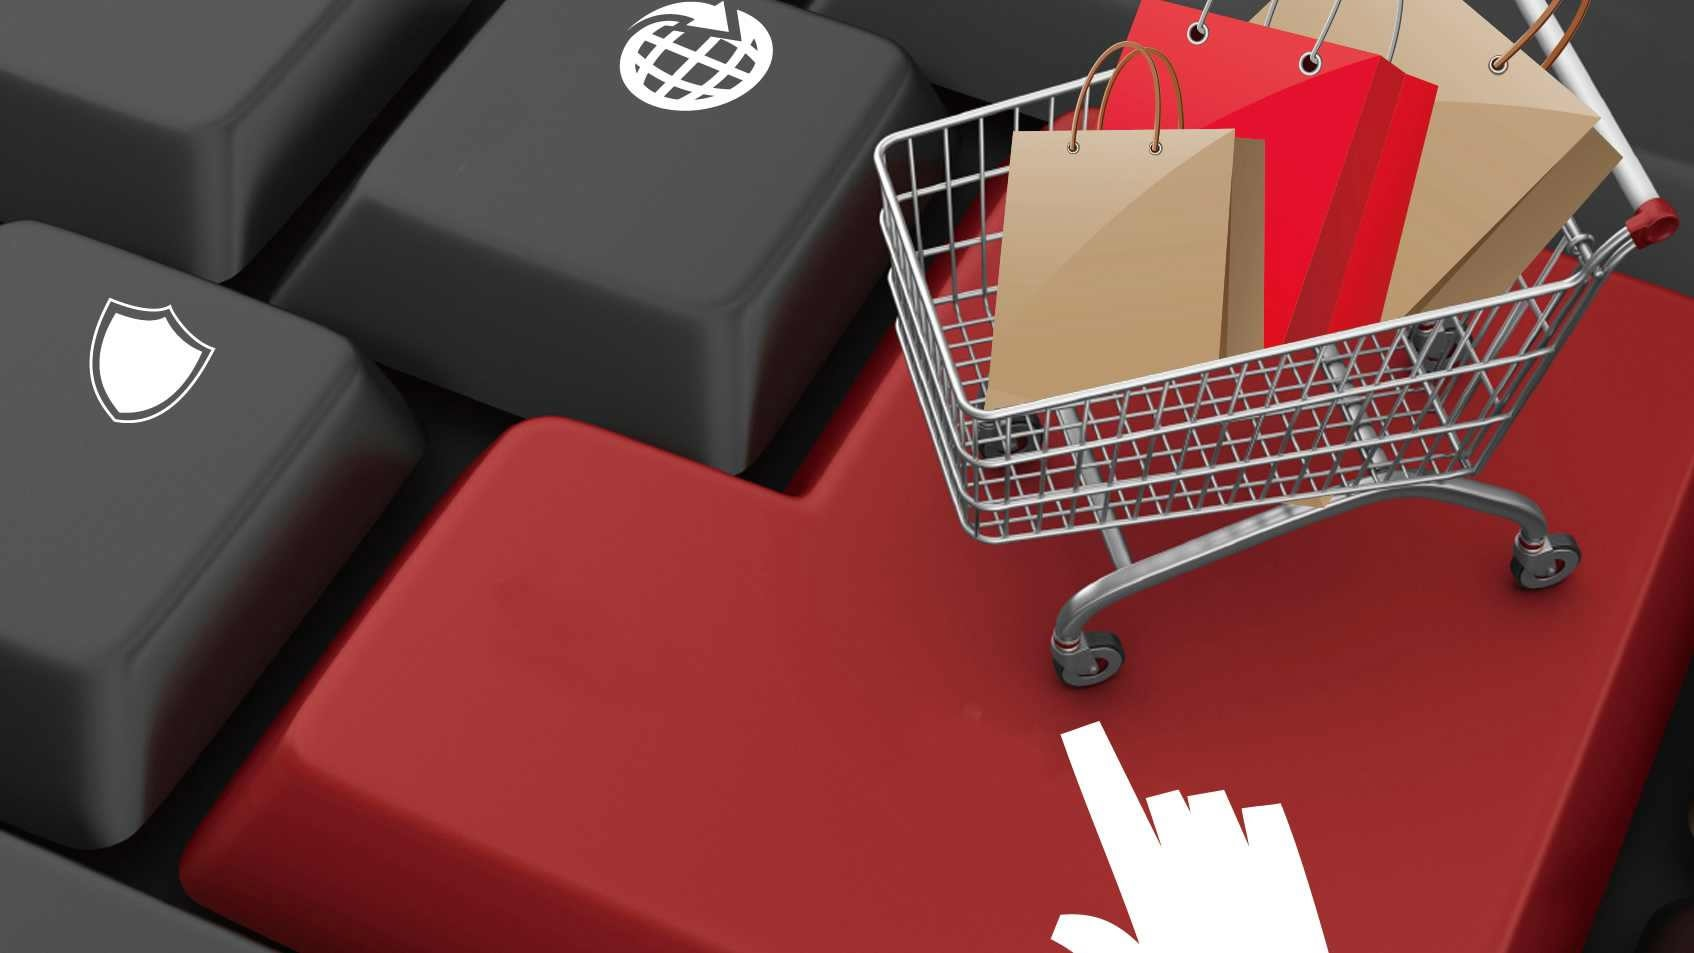 S.Korea's online shopping posts double-digit growth in January